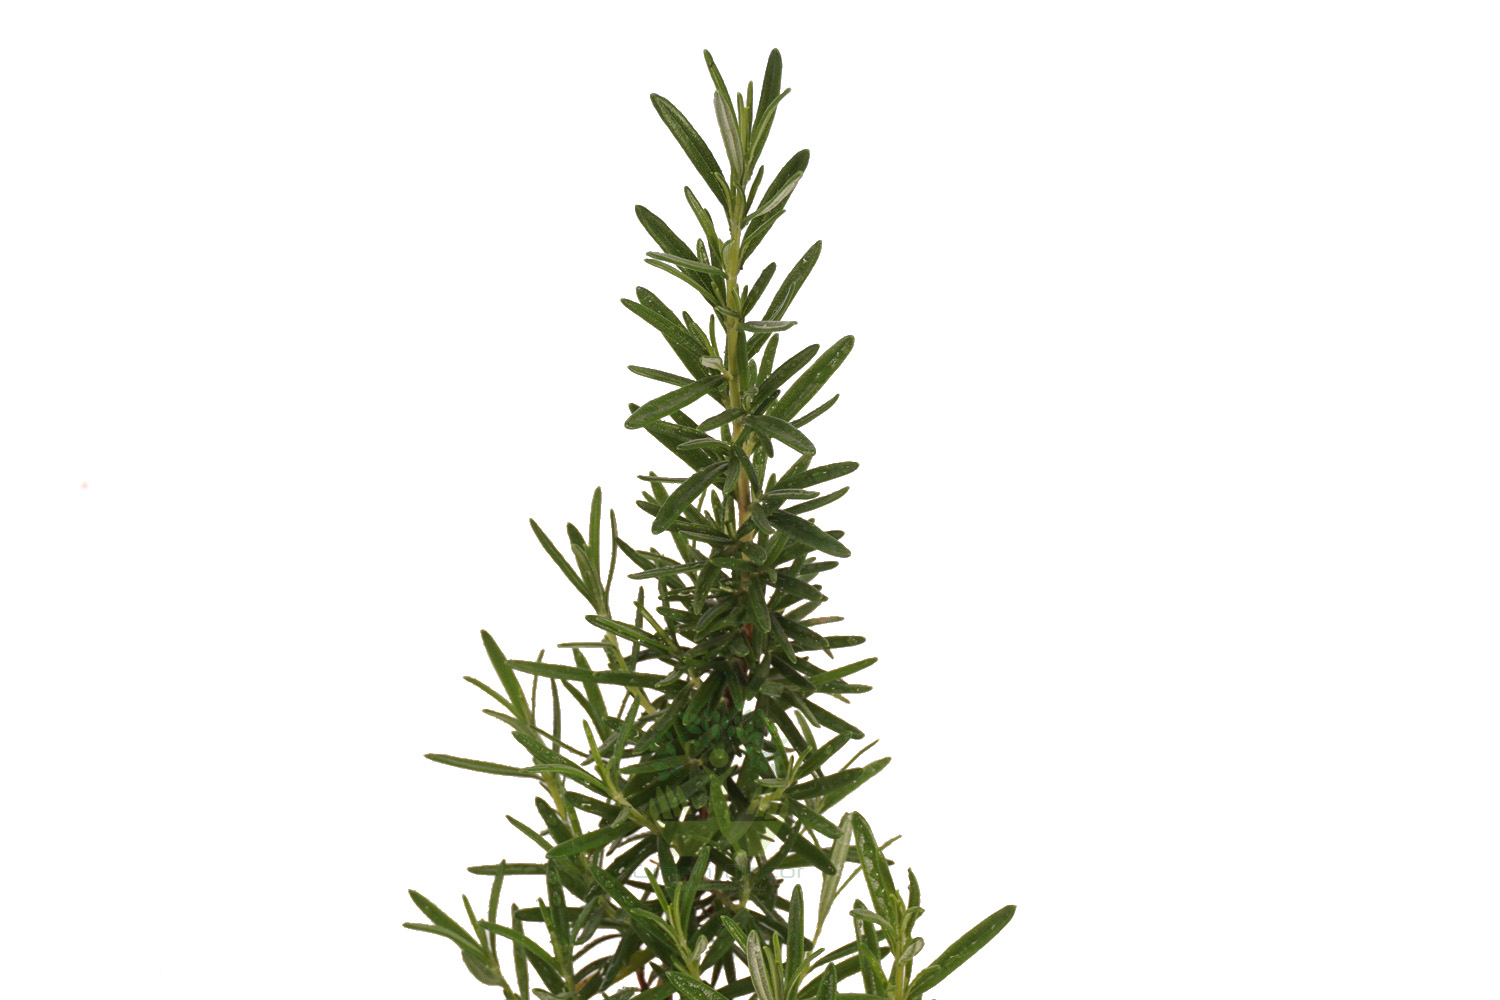 Buy Rosemary Plants , White Pots and seeds in Delhi NCR by the best online nursery shop Greendecor.